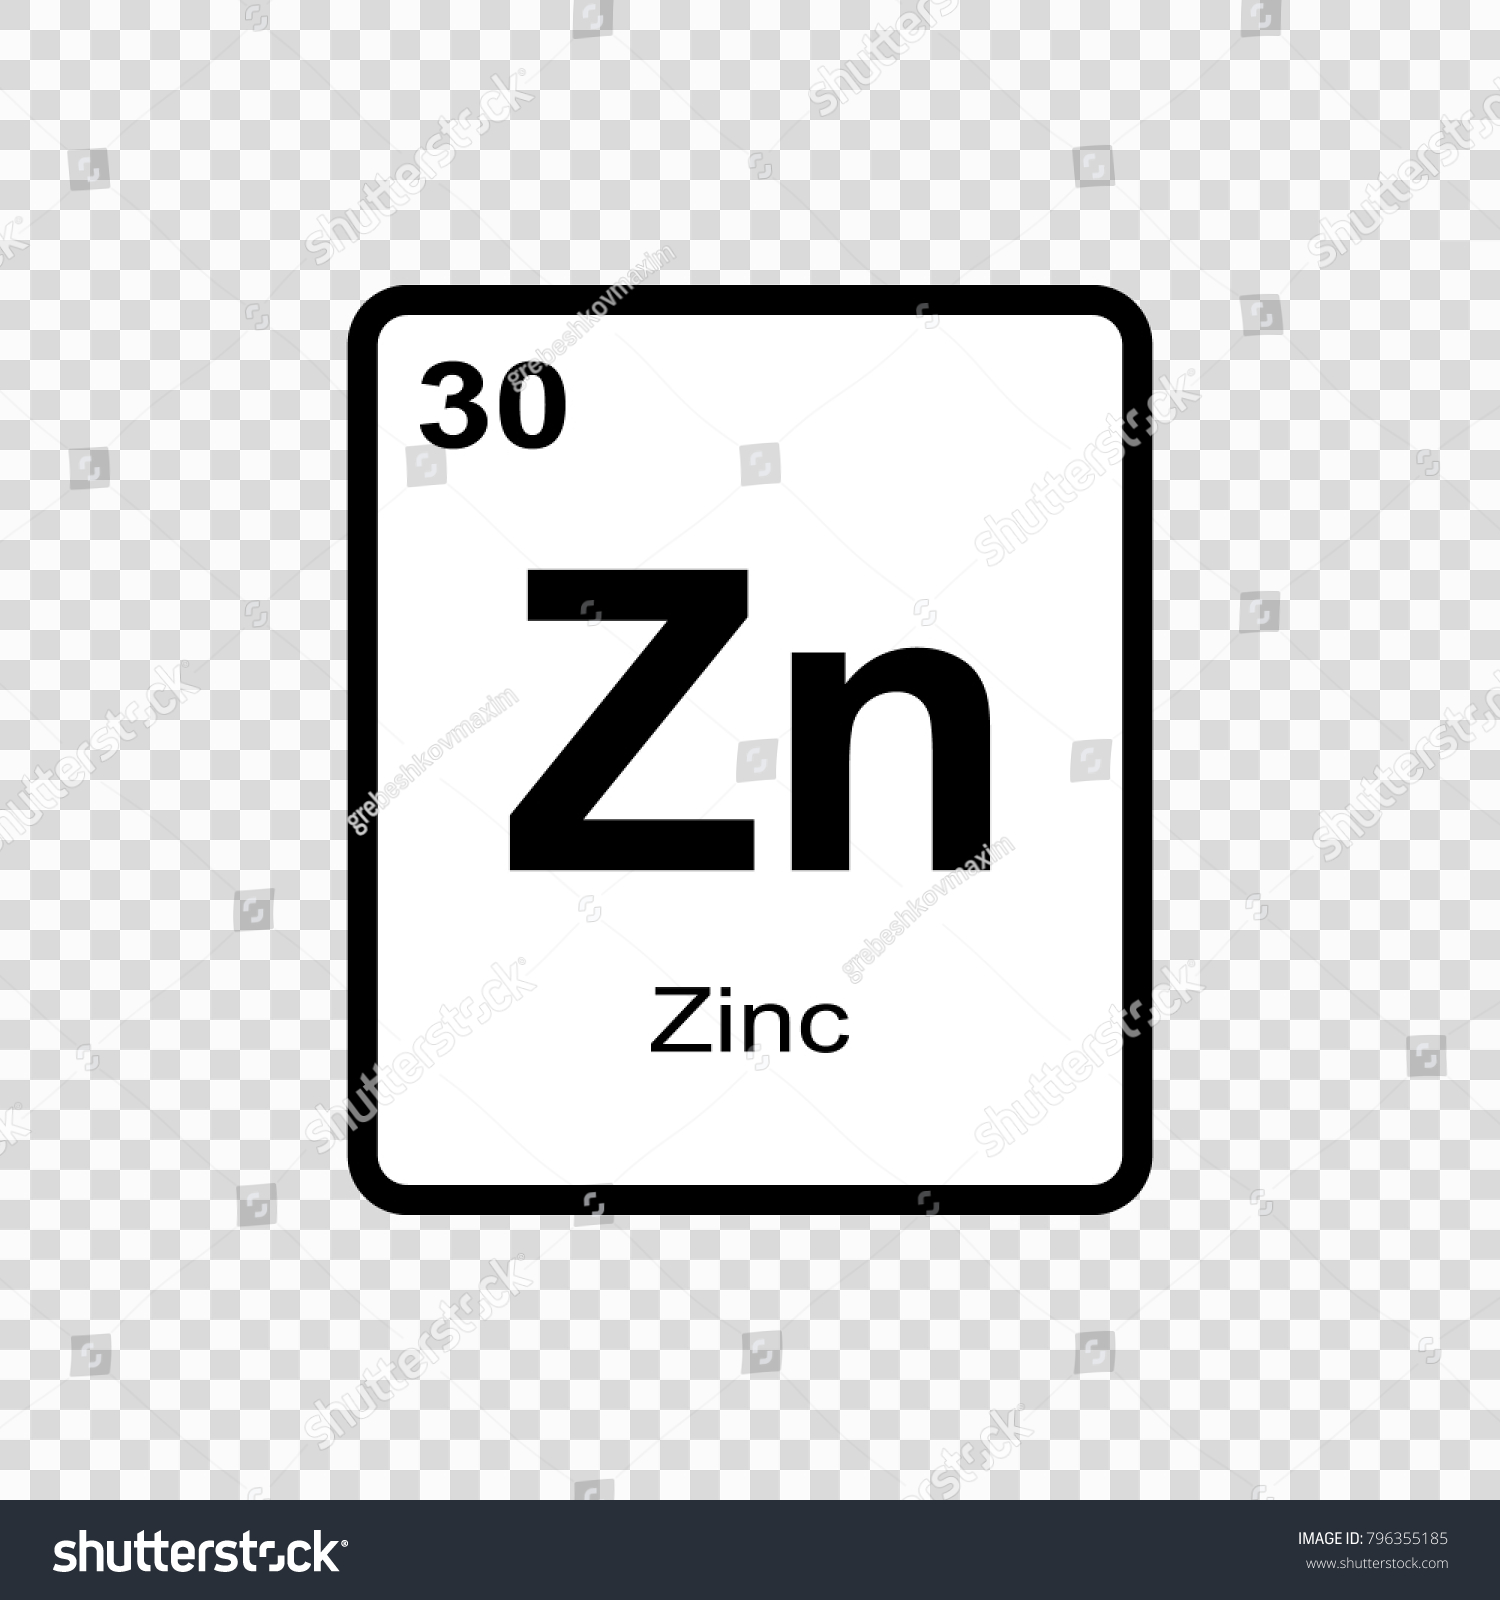 Zinc Chemical Element Sign Atomic Number Stock Vector Royalty Free